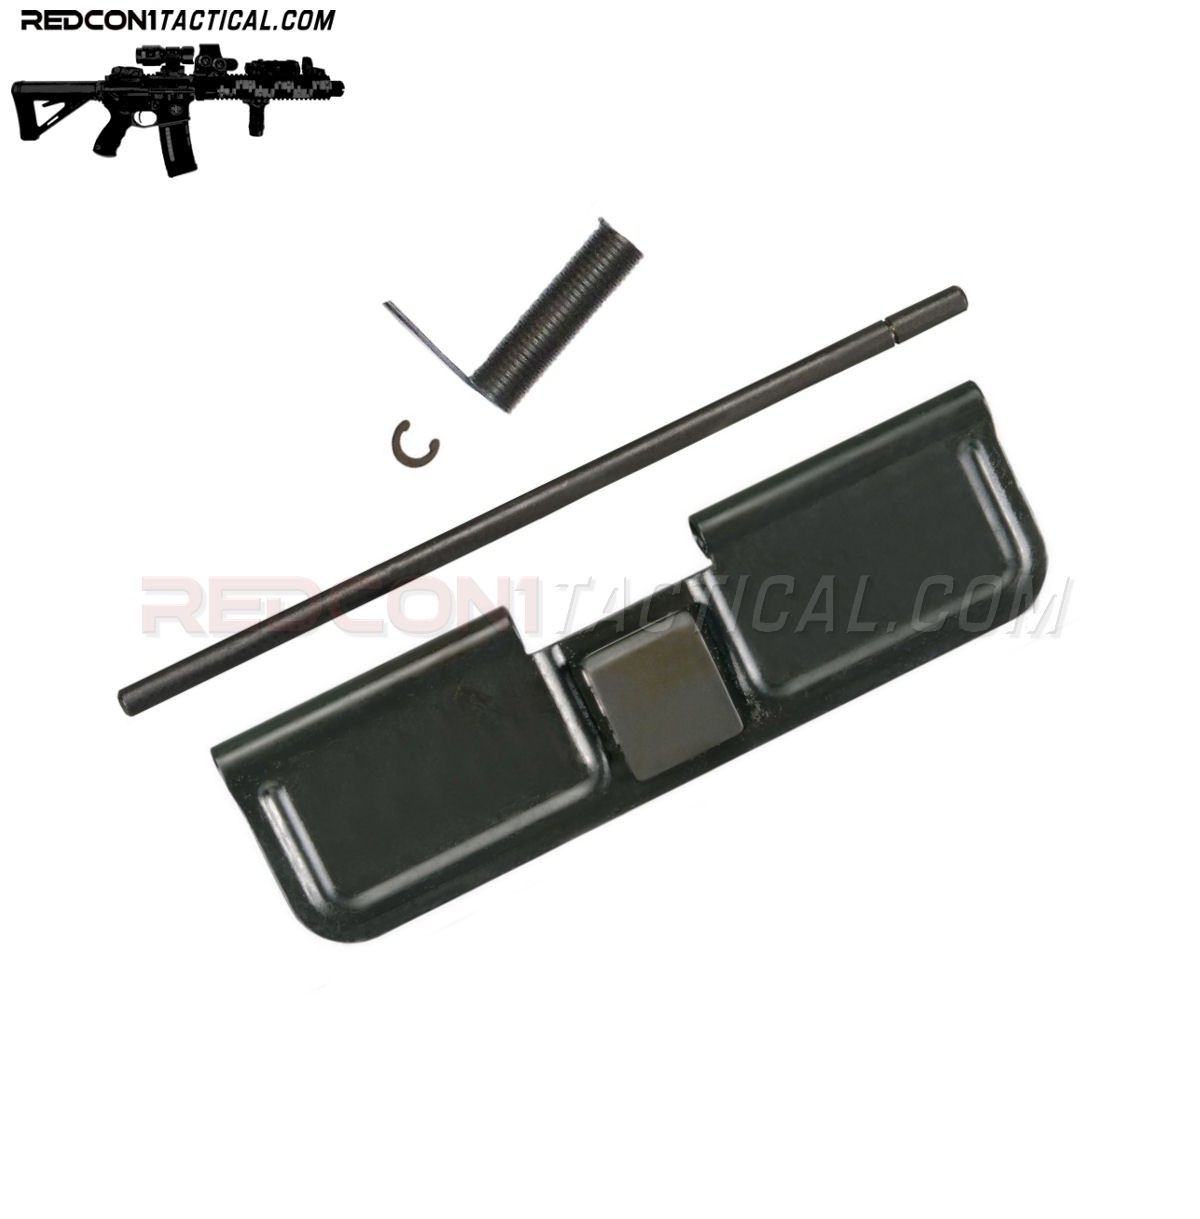 Ejection Port Doors : R tactical ejection port door assembly ar redcon